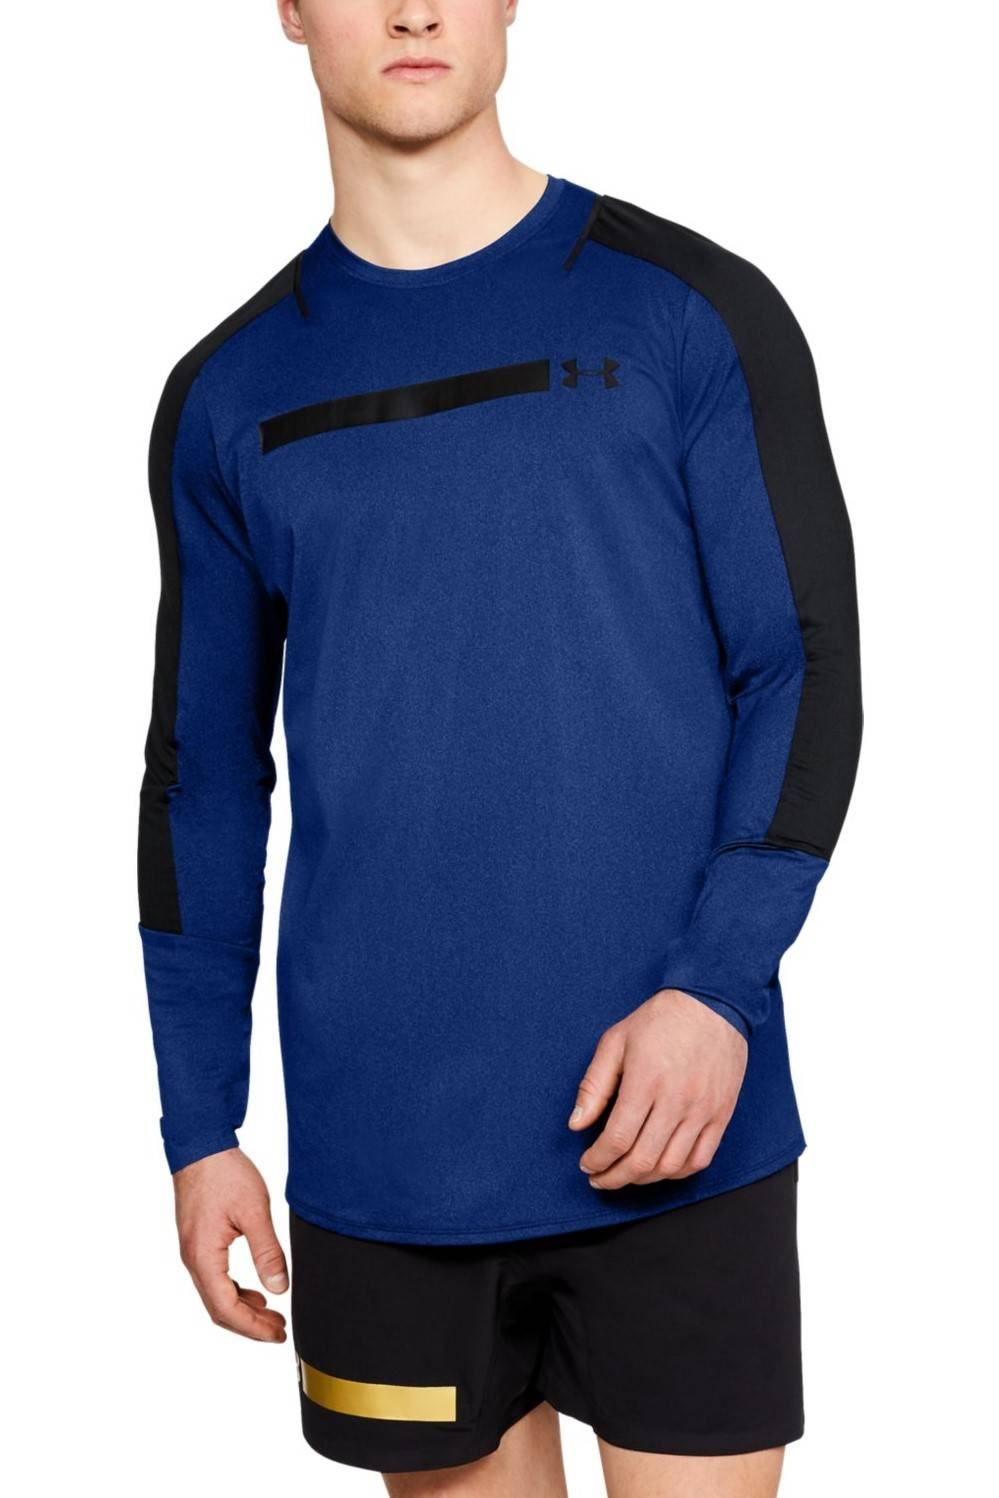 Under Armour T-shirt da uomo Under Armour blu scuro Perpetl Fitted LS - XL